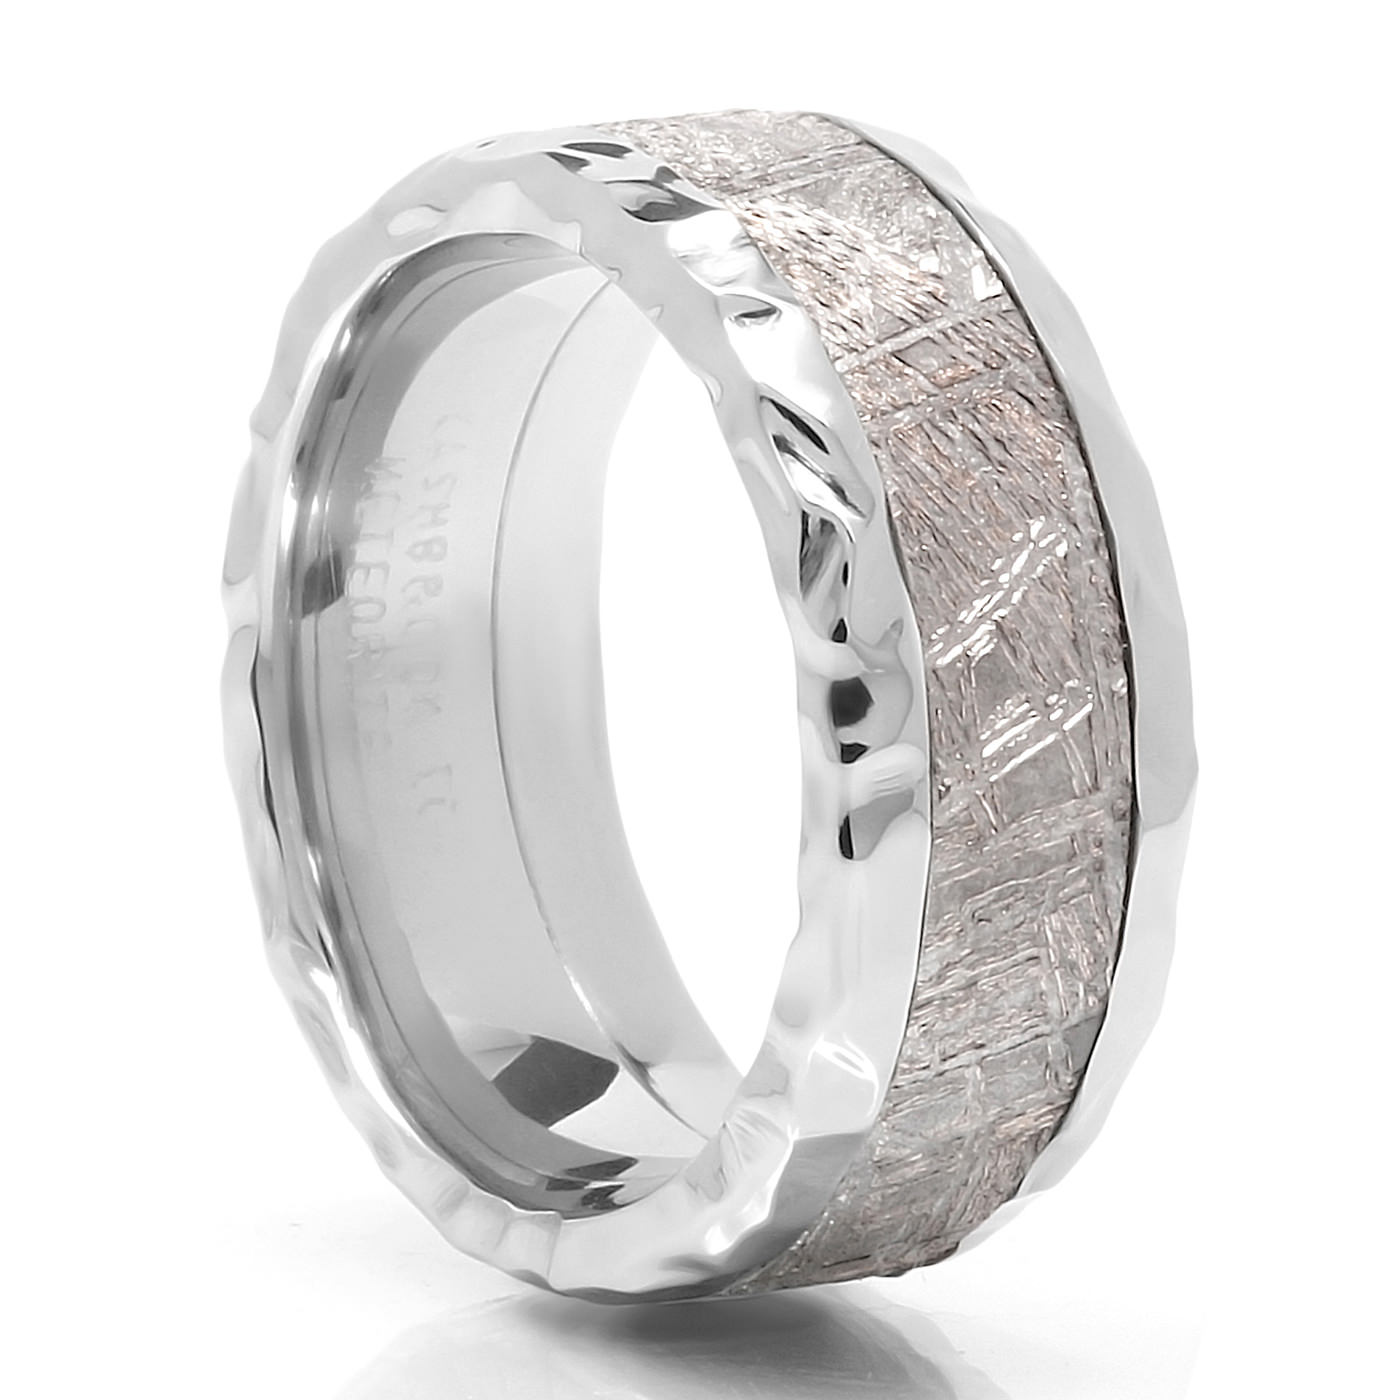 rock meteorite ring meteorite wedding ring